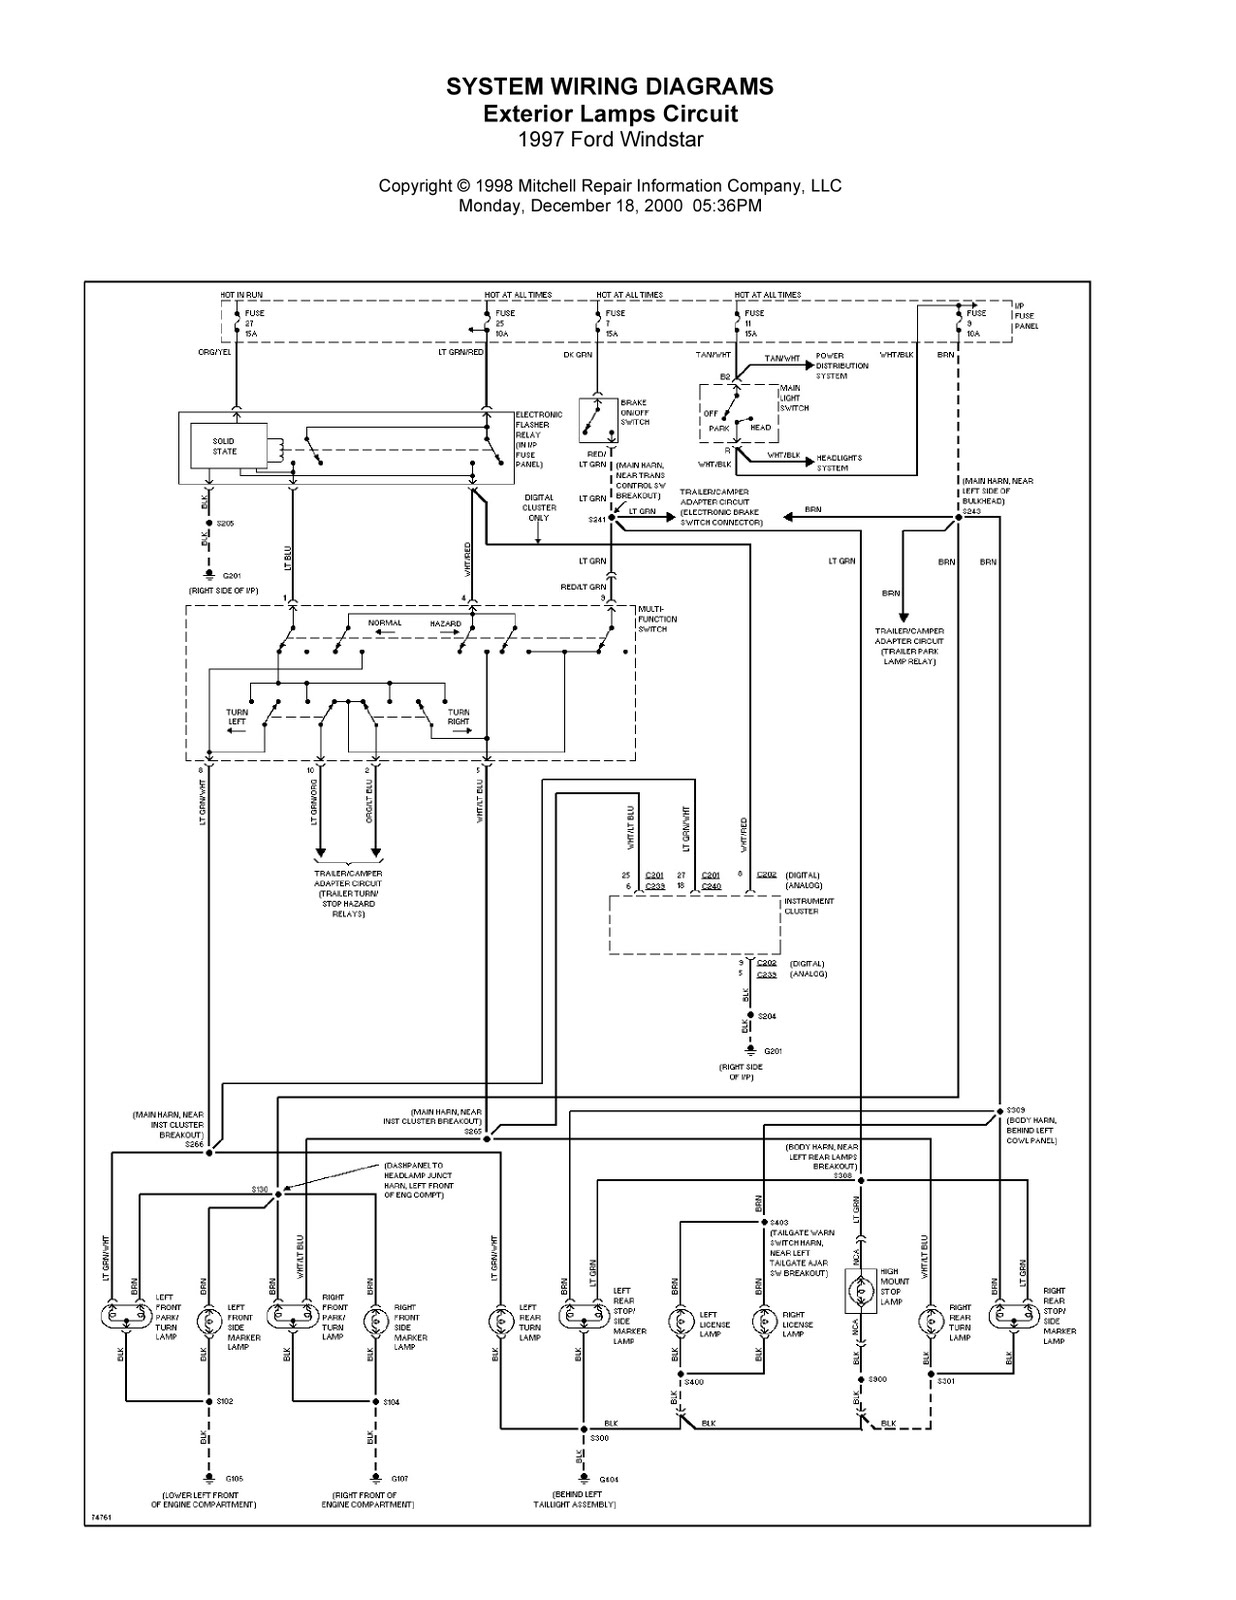 Ford Windstar Wiper Motor Diagram Wiring Diagrams 3 8 Engine Auto 38 1999